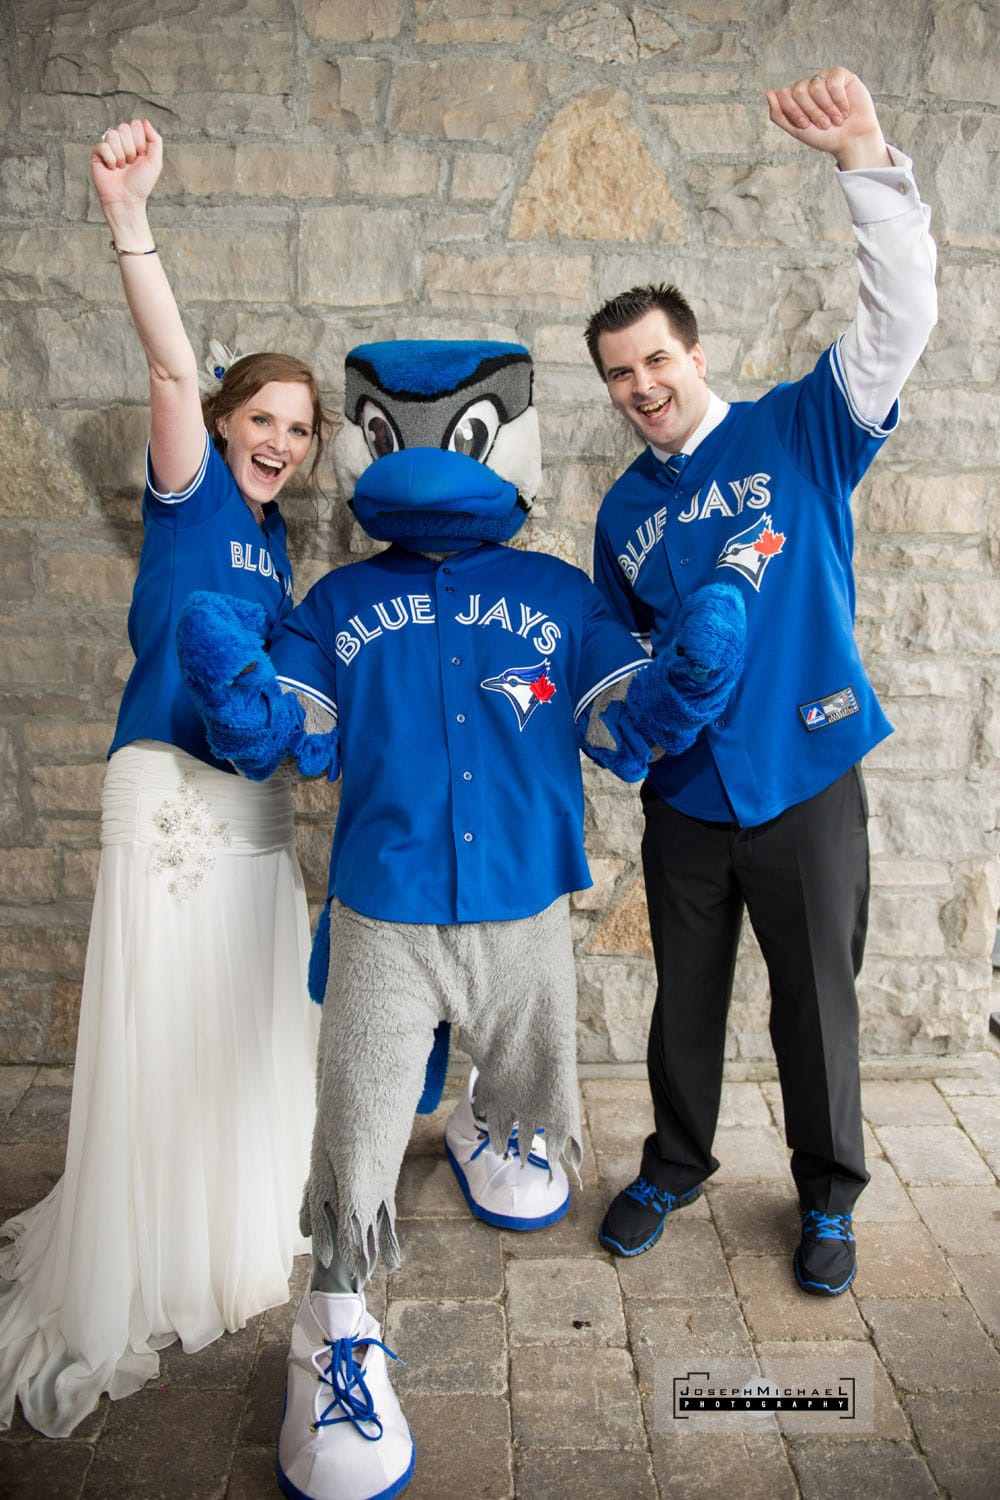 Baseball Themed Wedding Blue Jays